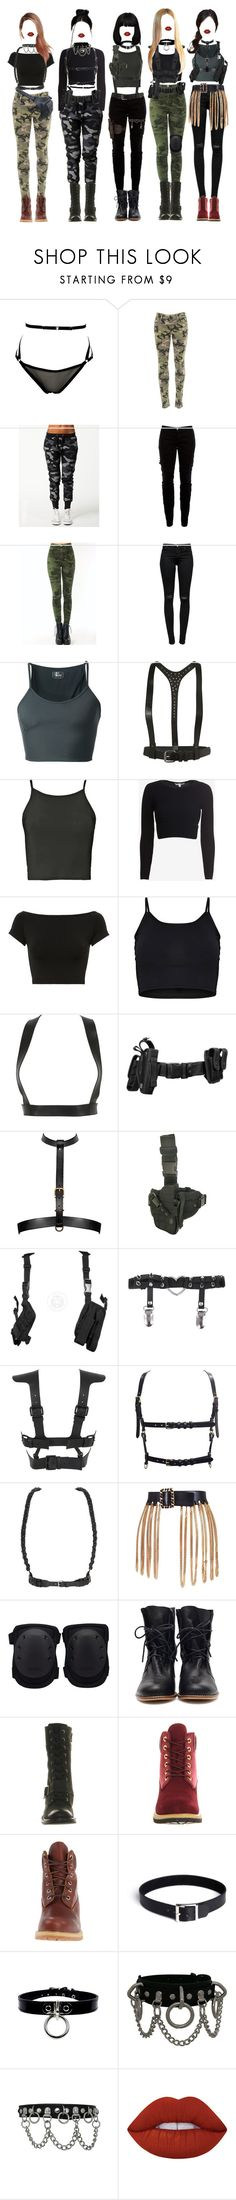 """CAPRICORN _ POWER"" by xxeucliffexx ❤ liked on Polyvore featuring Black Orchid, Zoe Karssen, Joie, J Brand, Lost & Found, Boohoo, Jonathan Simkhai, Helmut Lang, Zana Bayne and Universal"